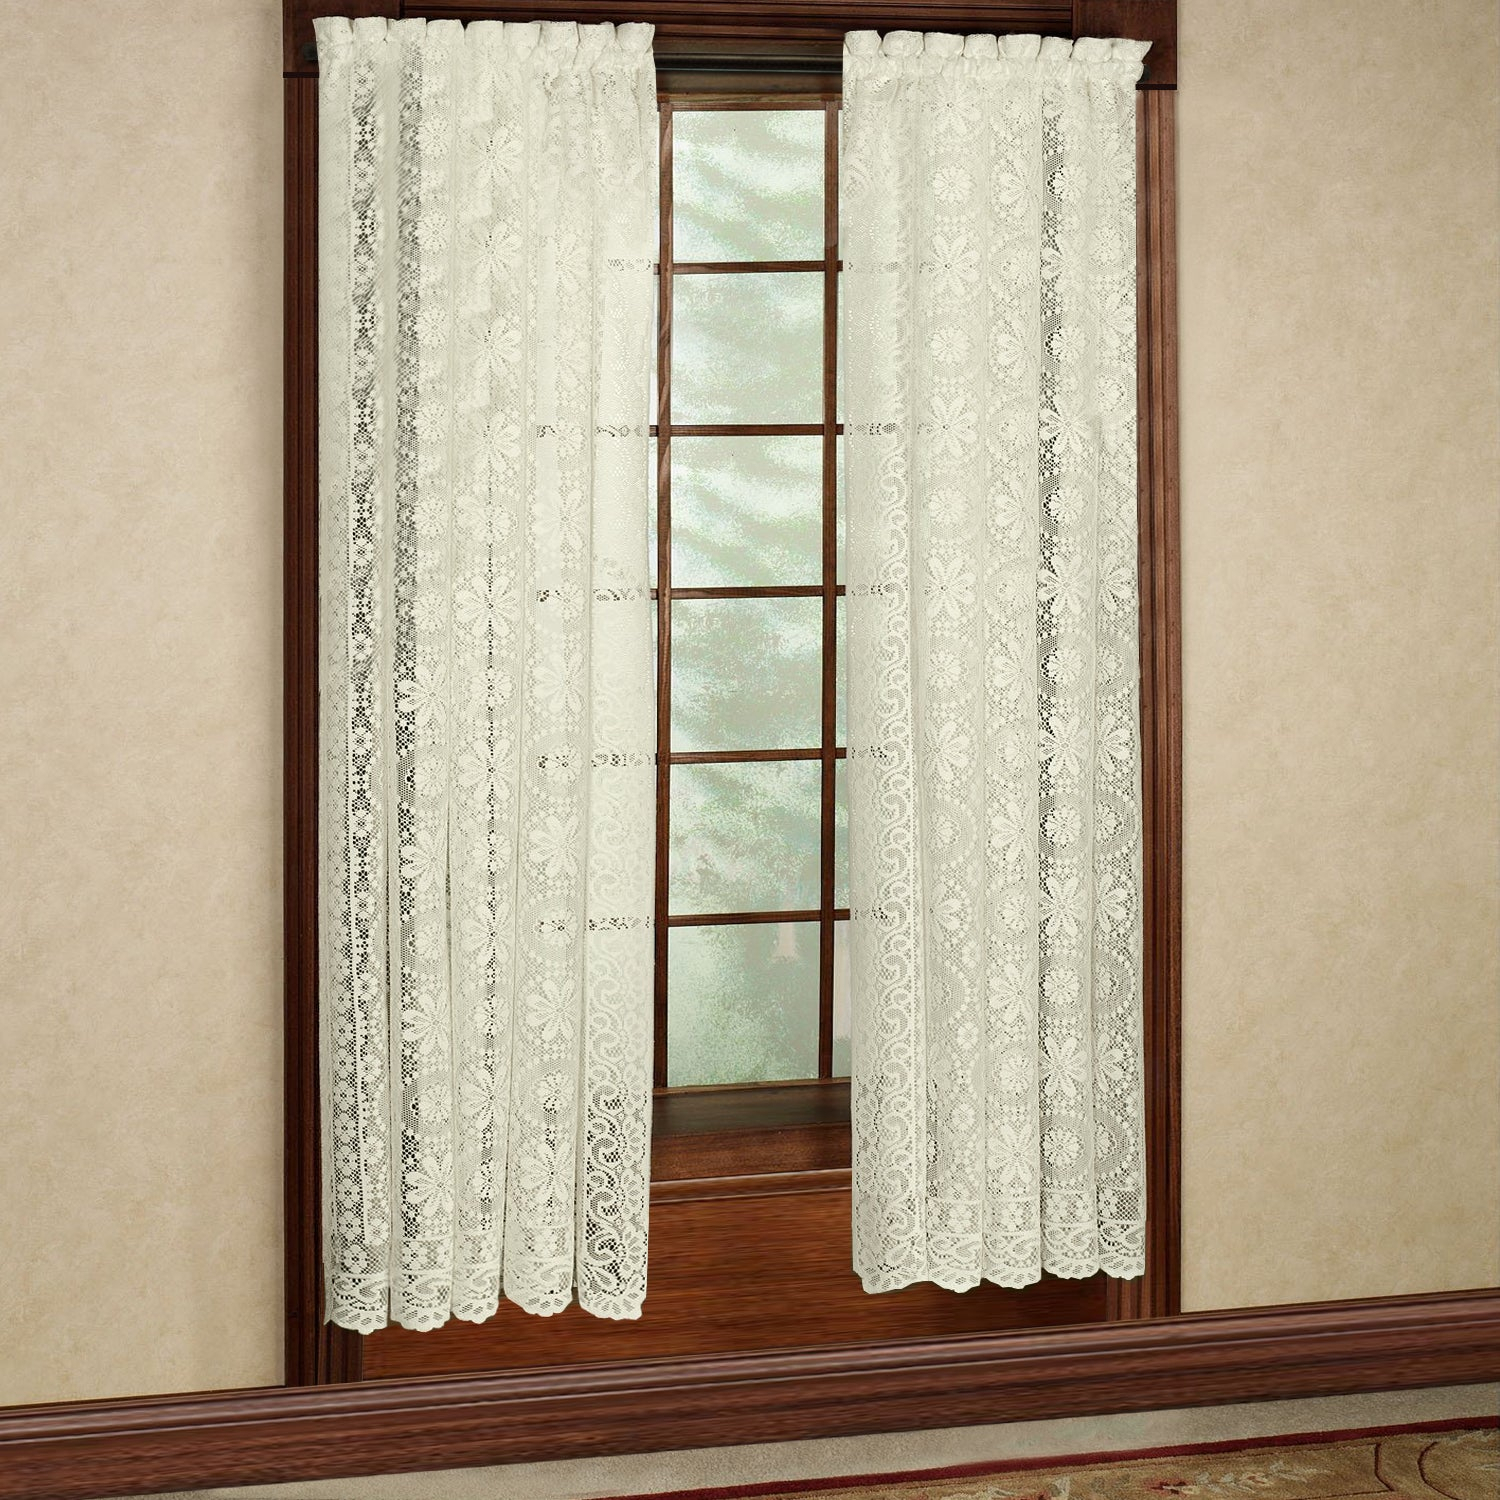 Luxurious Old World Style Lace Window Curtain Panel Regarding Luxurious Old World Style Lace Window Curtain Panels (View 2 of 20)